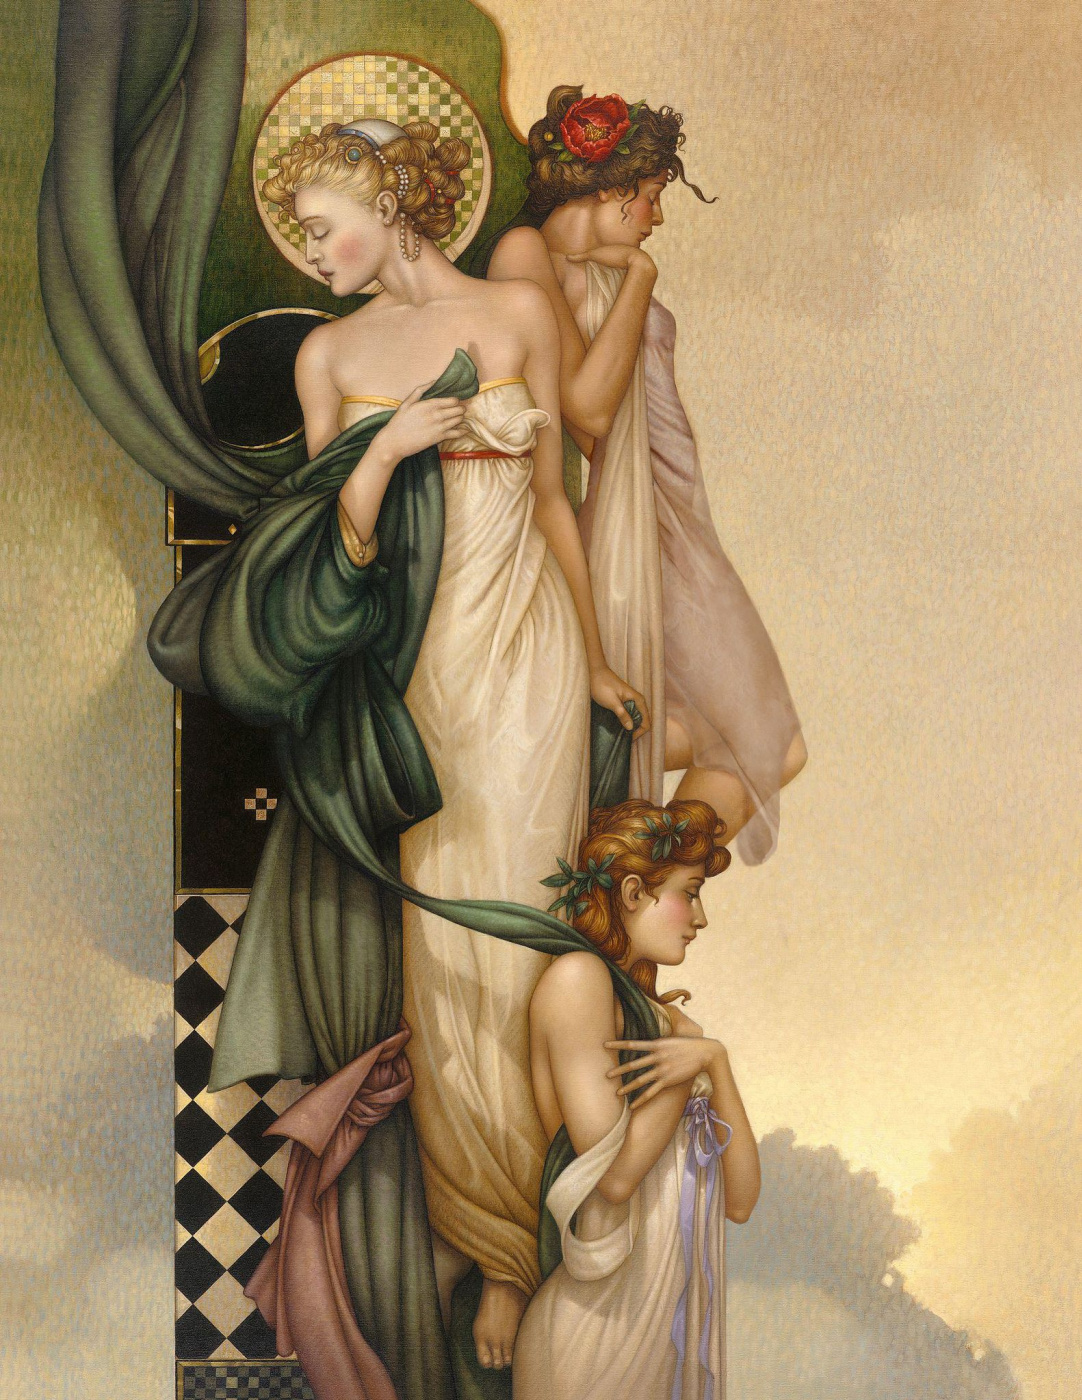 Michael Parkes. Three Graces